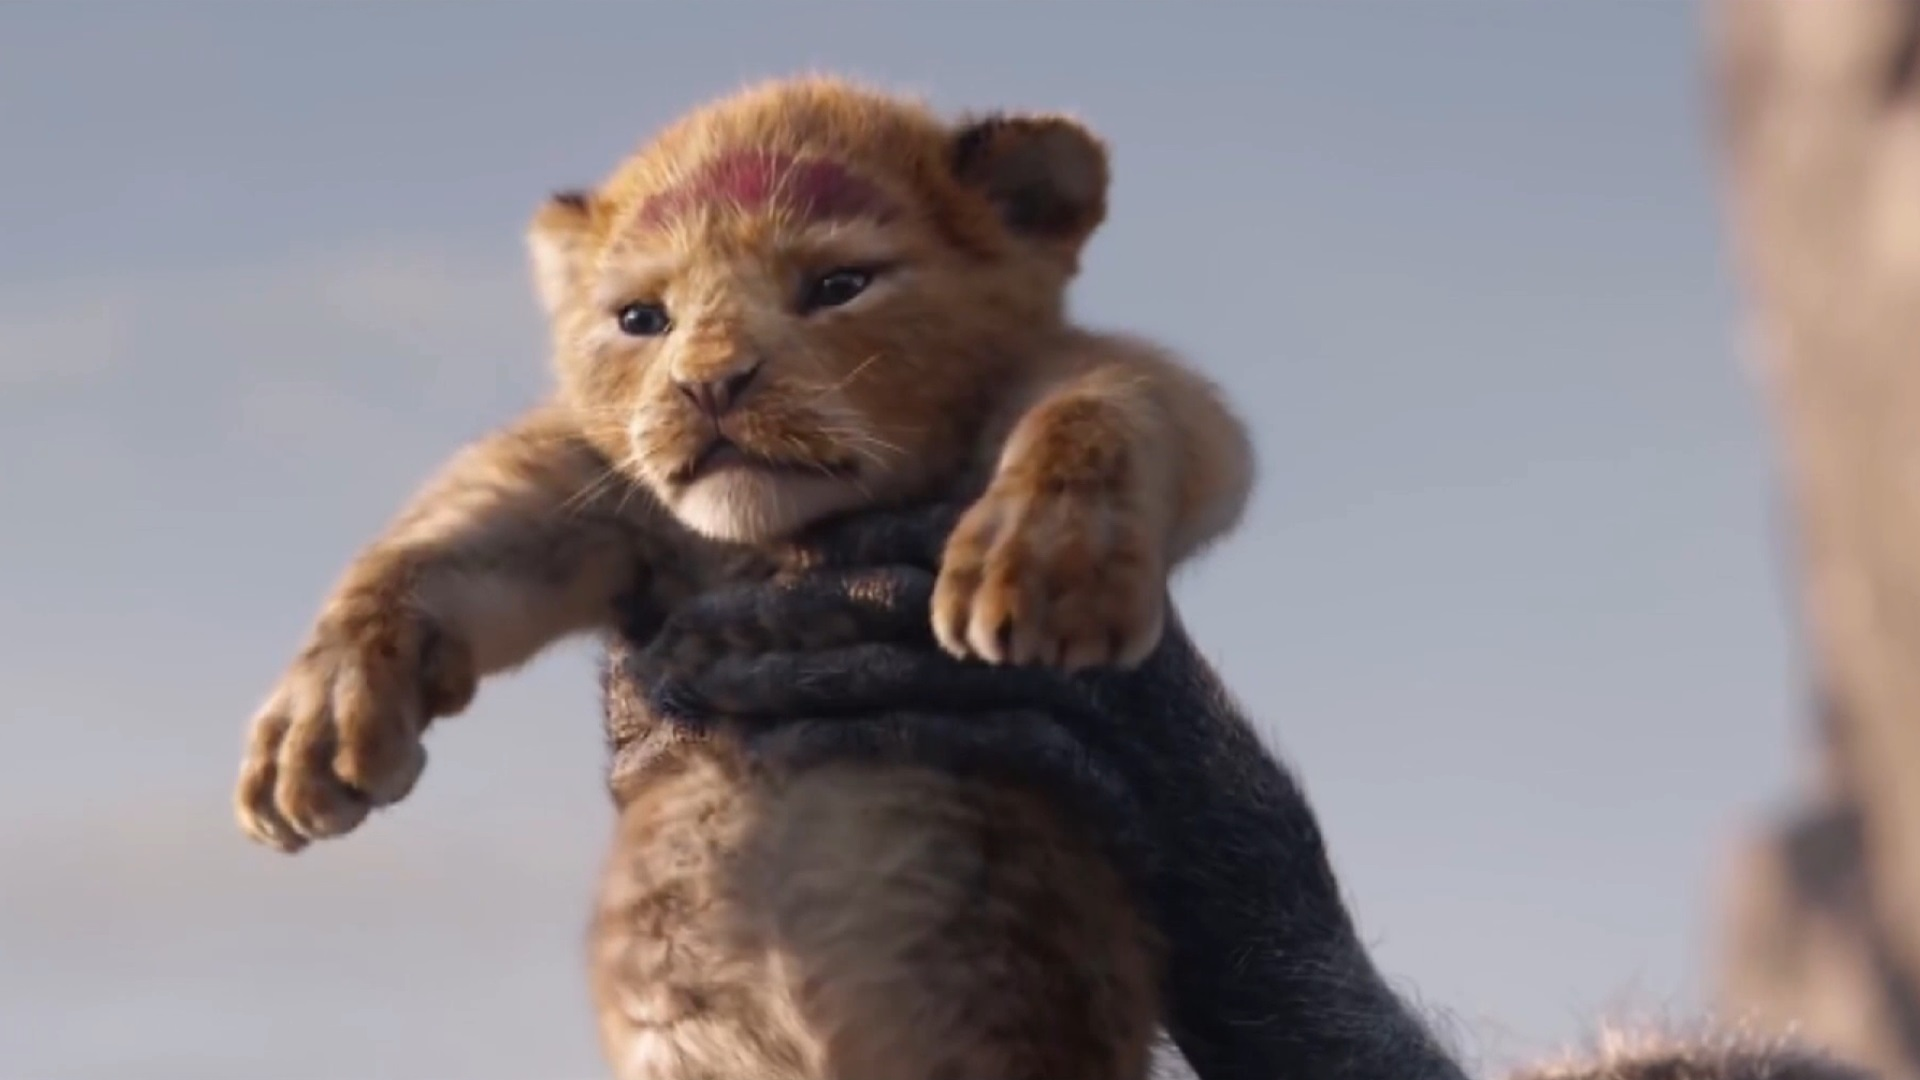 The Lion King 2019 The Lion King 2019 Wallpaper 42723127